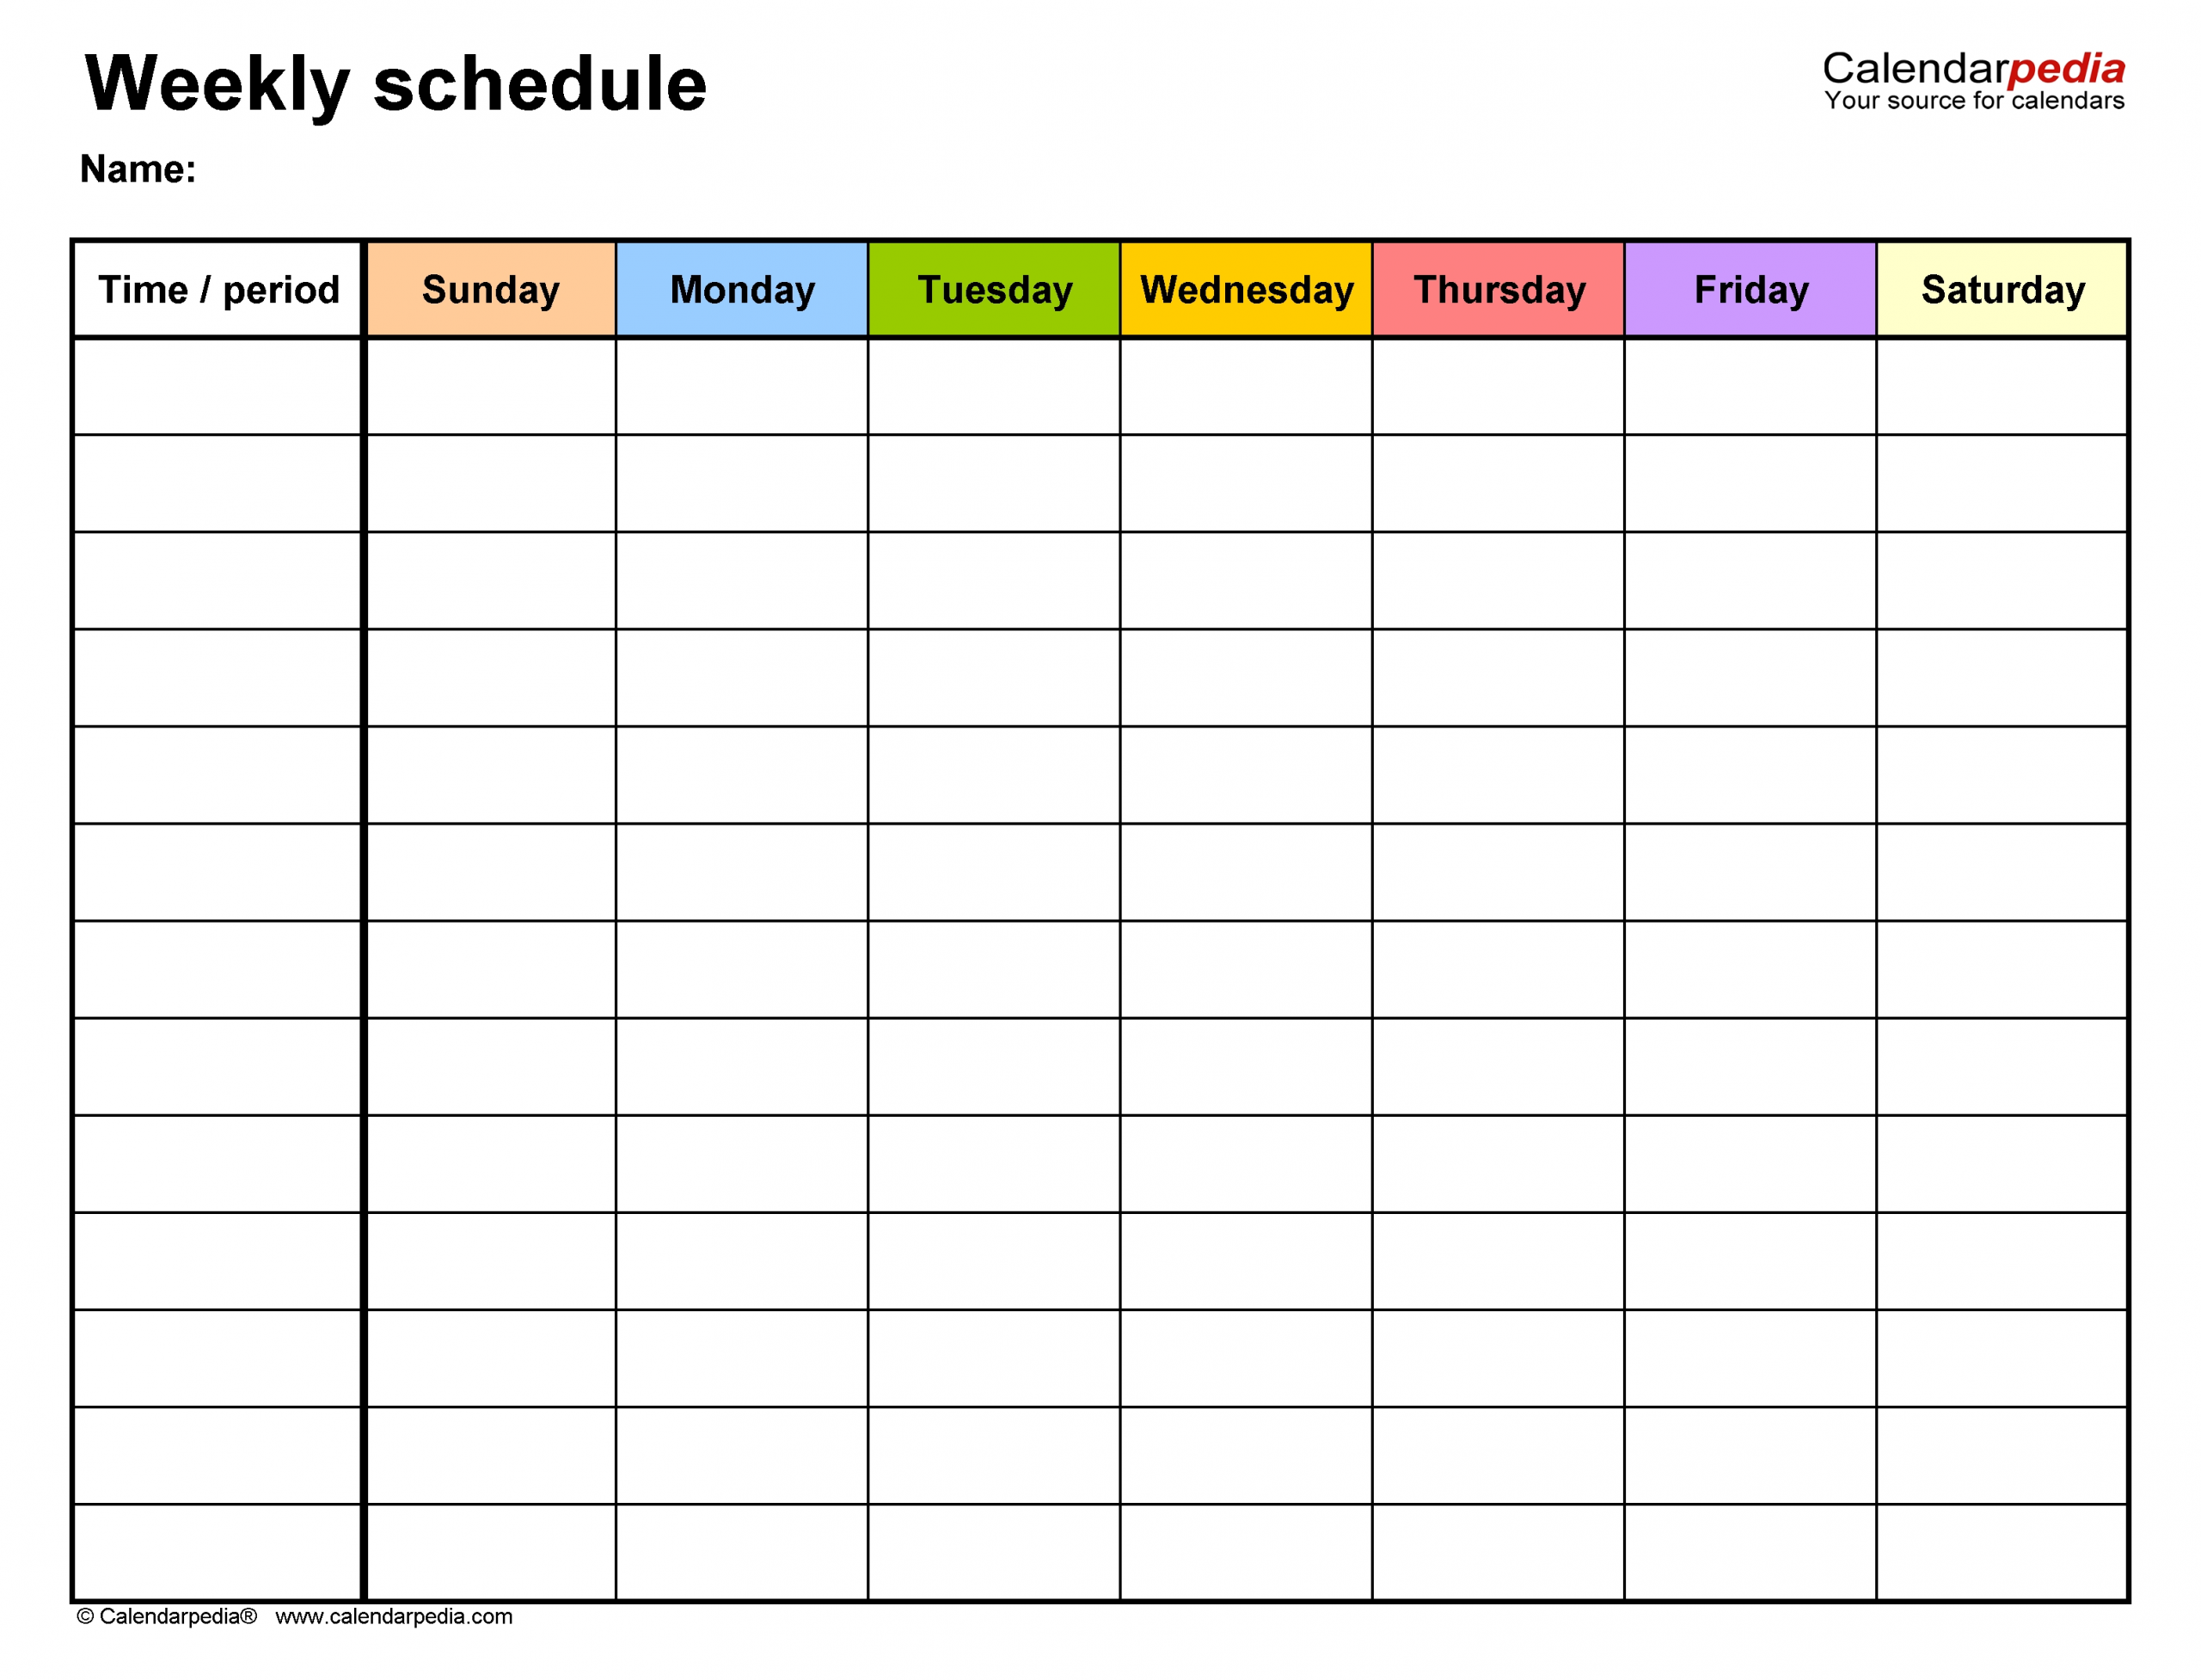 Free Weekly Schedule Templates For Word - 18 Templates  7 Day Week Planner Printable